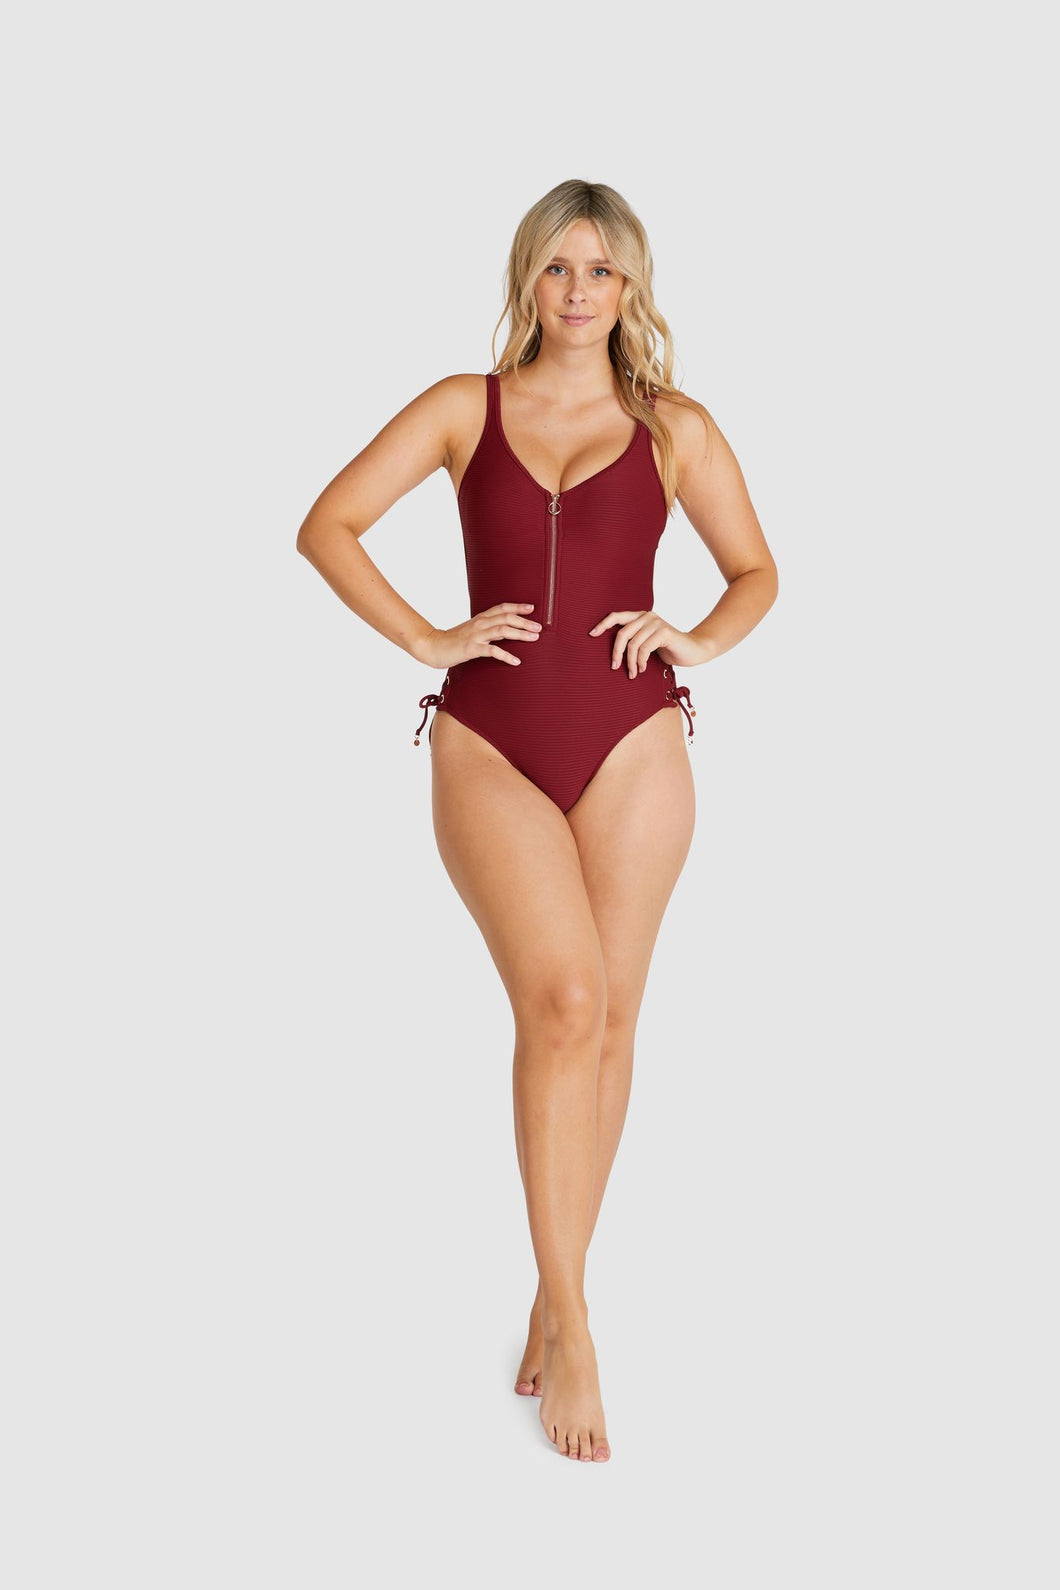 BAKU - RIBTIDE - ZIP FRONT ONE PIECE - CURRANT